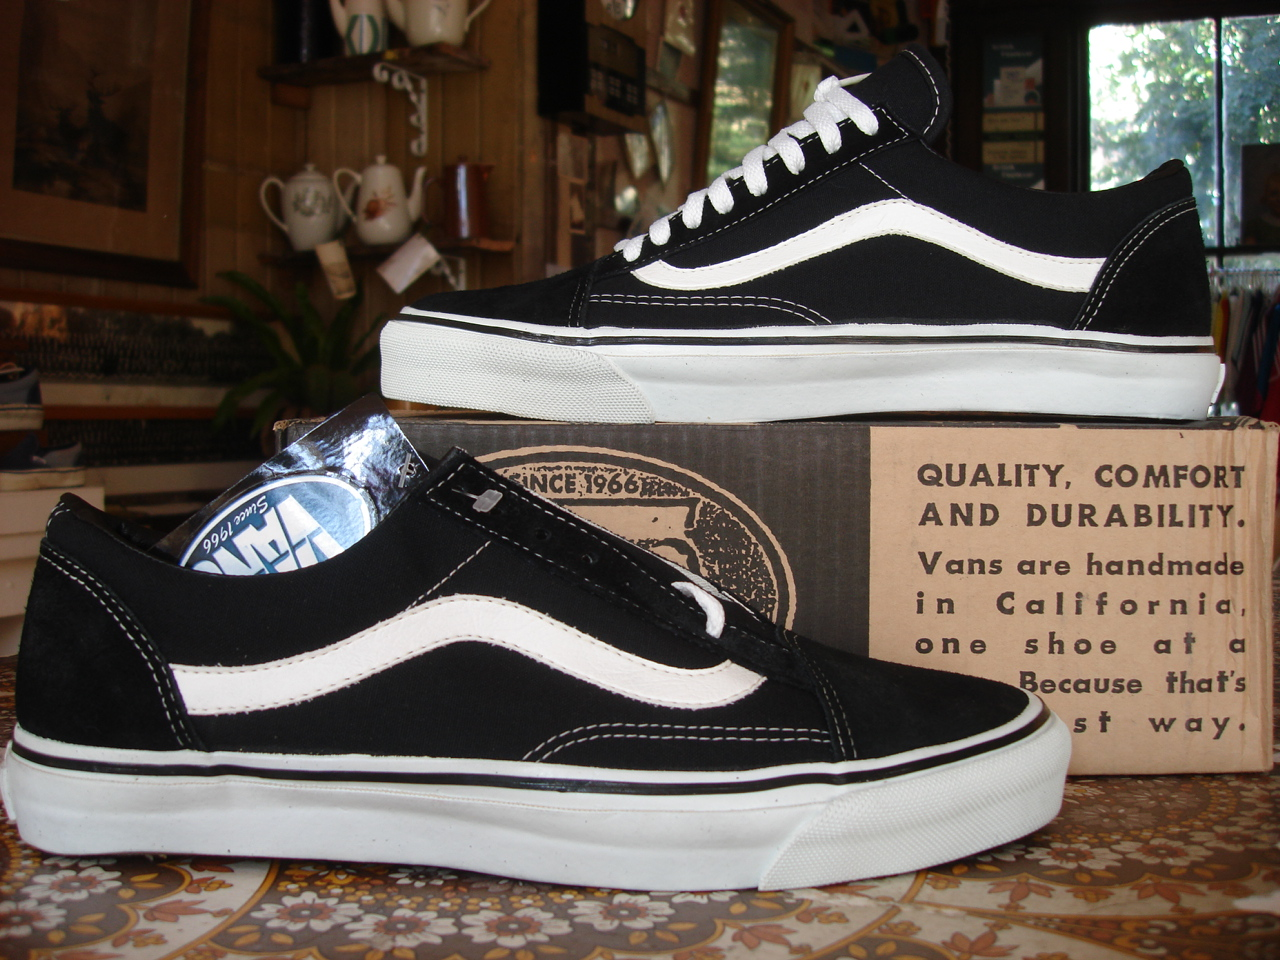 c3c9f6d8b8 theothersideofthepillow  vintage VANS black suede OLD SKOOL style  36 MADE  IN USA US12 minor threat punk